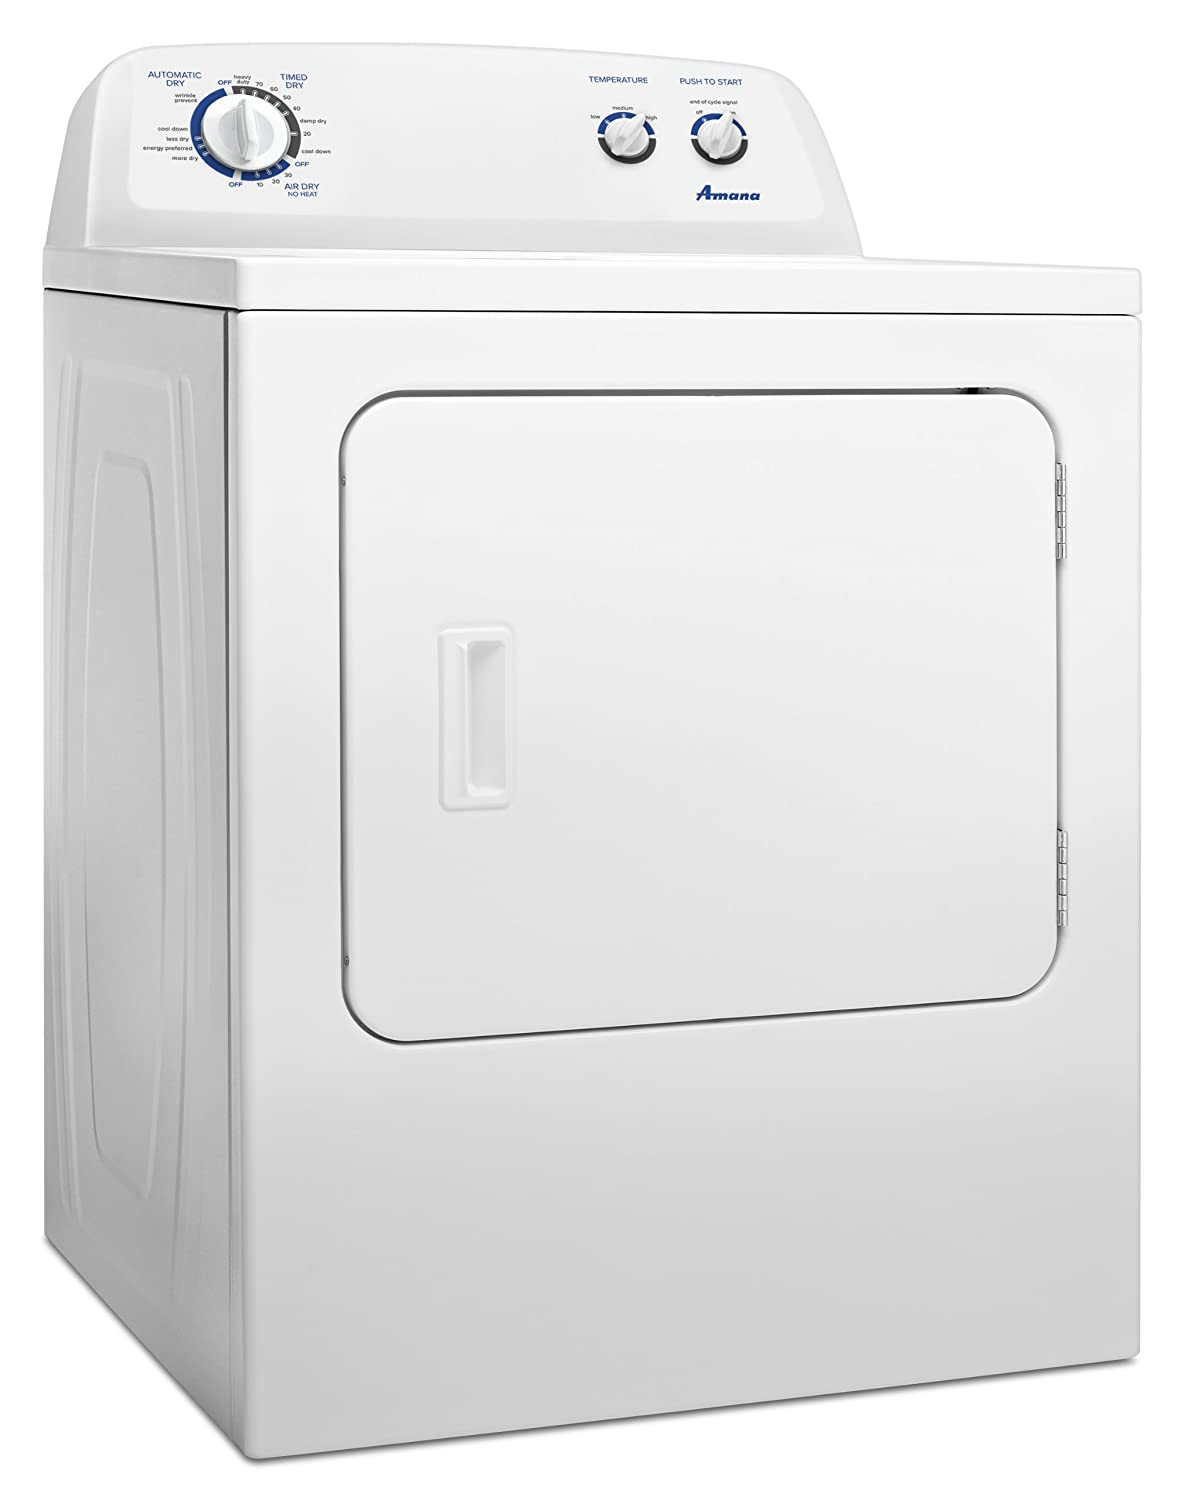 amazon com amana 7 0 cu ft traditional electric dryer amazon com amana 7 0 cu ft traditional electric dryer interior drum light ned4700yq white appliances